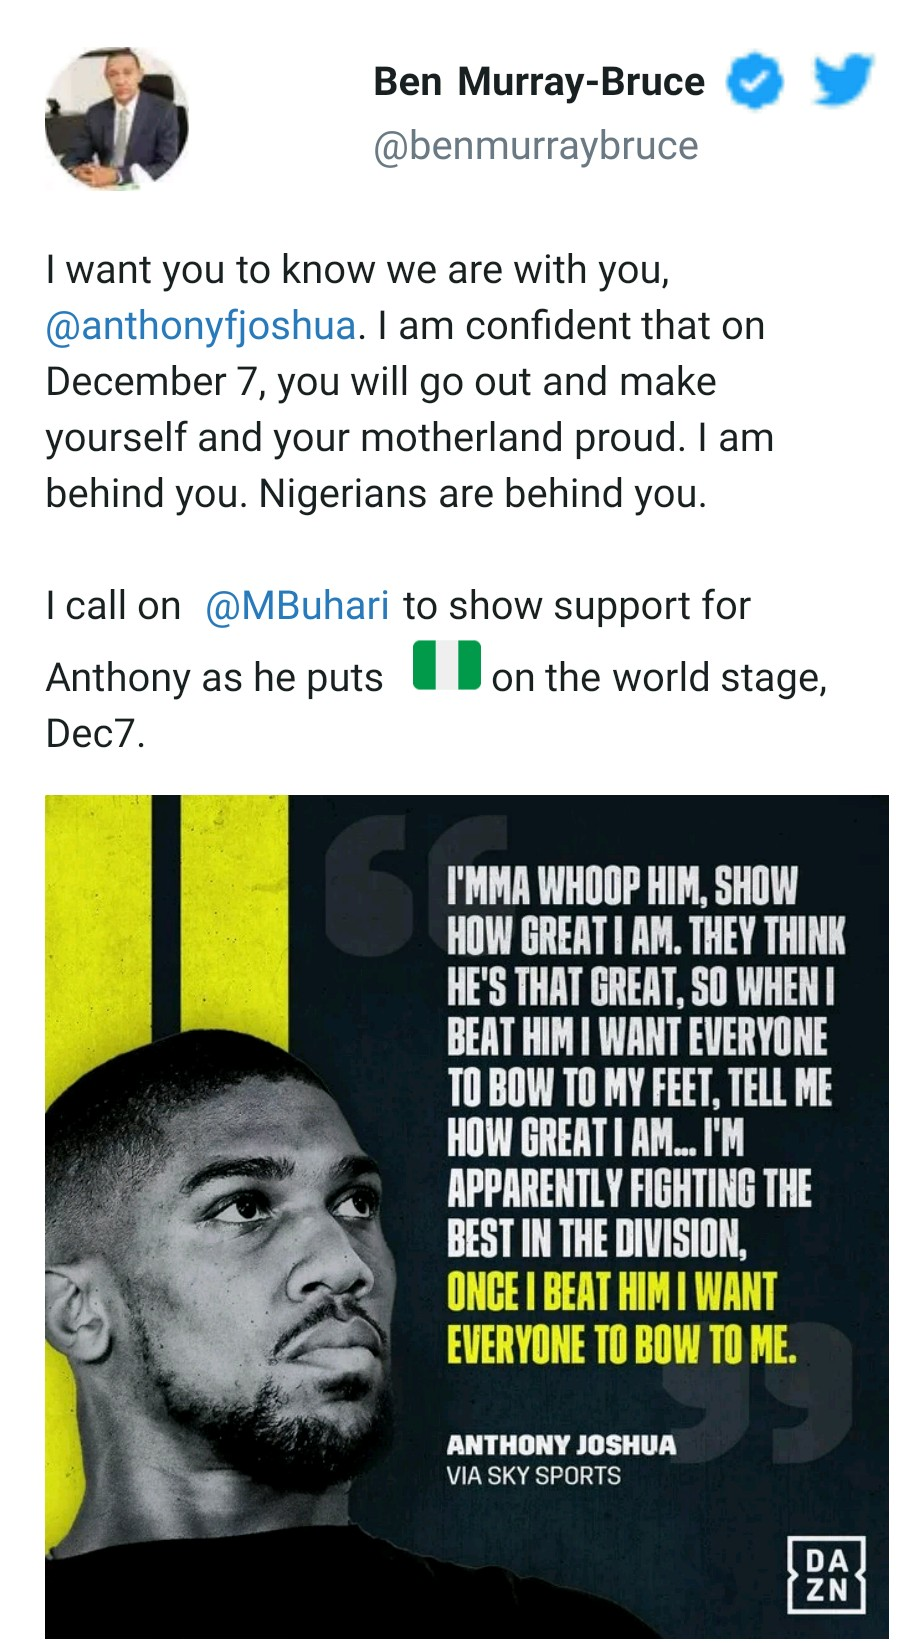 Senator Ben Bruce calls on President Buhari to support Anthony Joshua ahead of his rematch with Ruiz